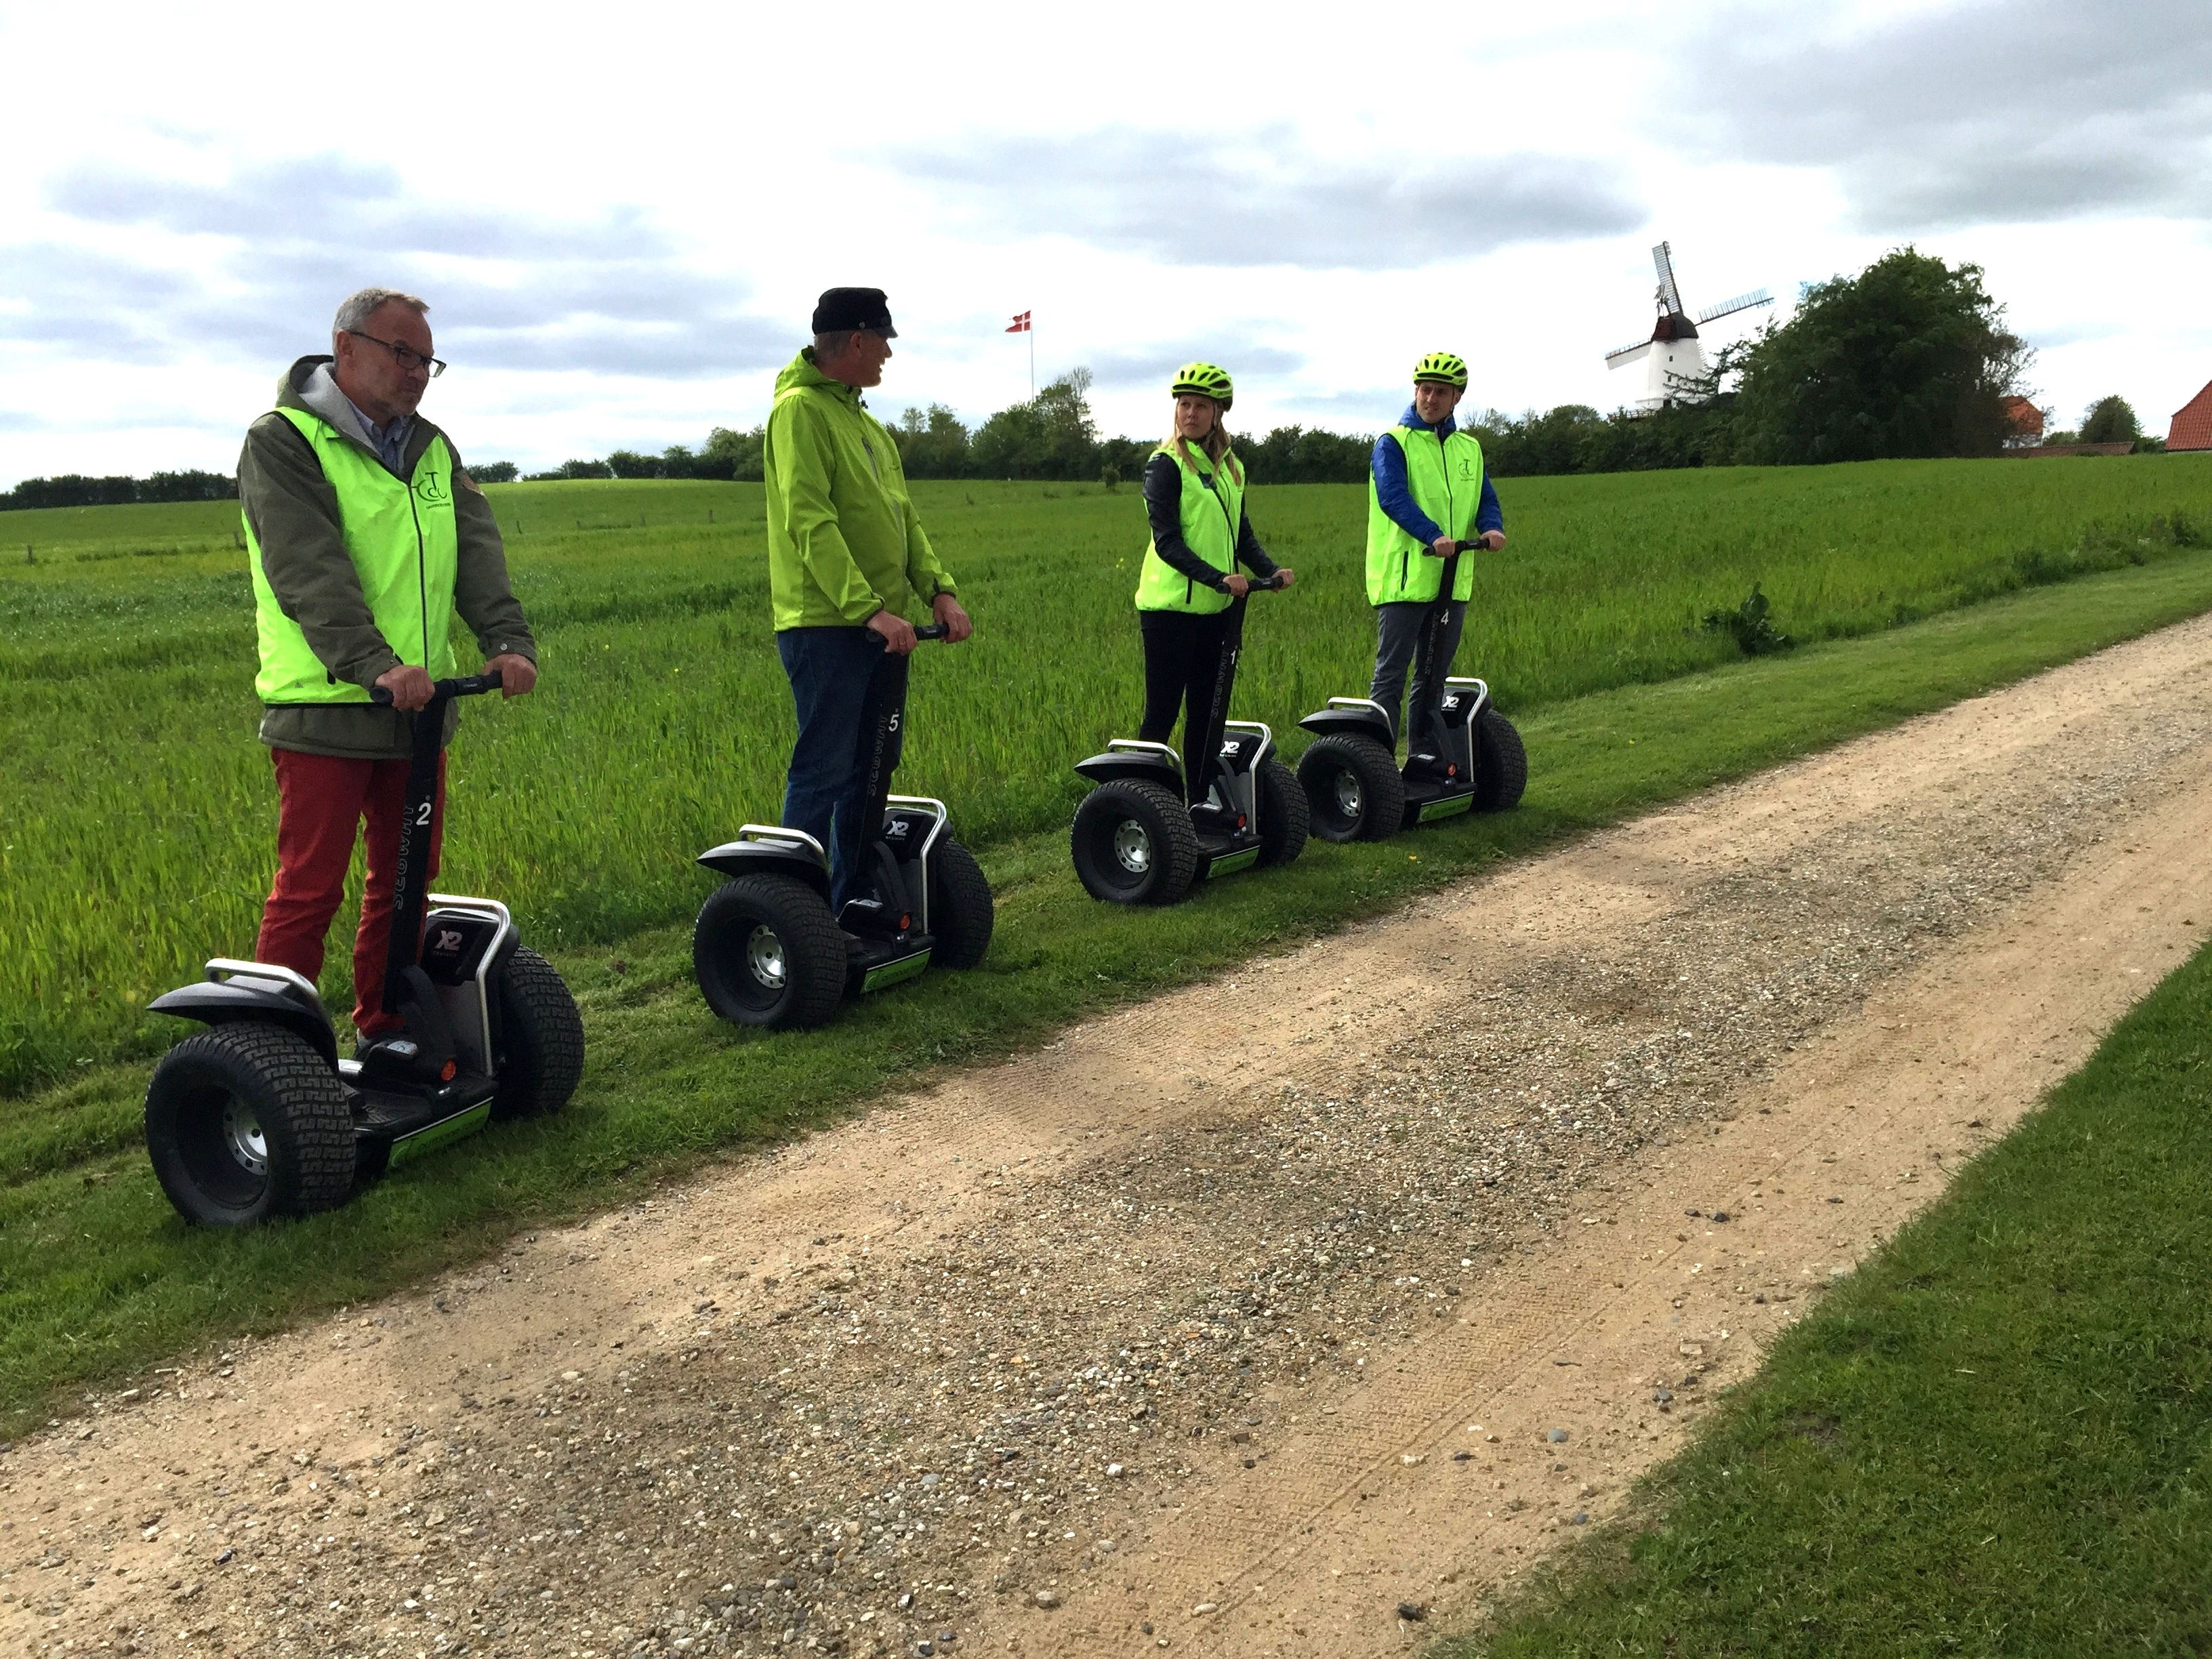 Great Segway tour on Dybbølbanke with guide